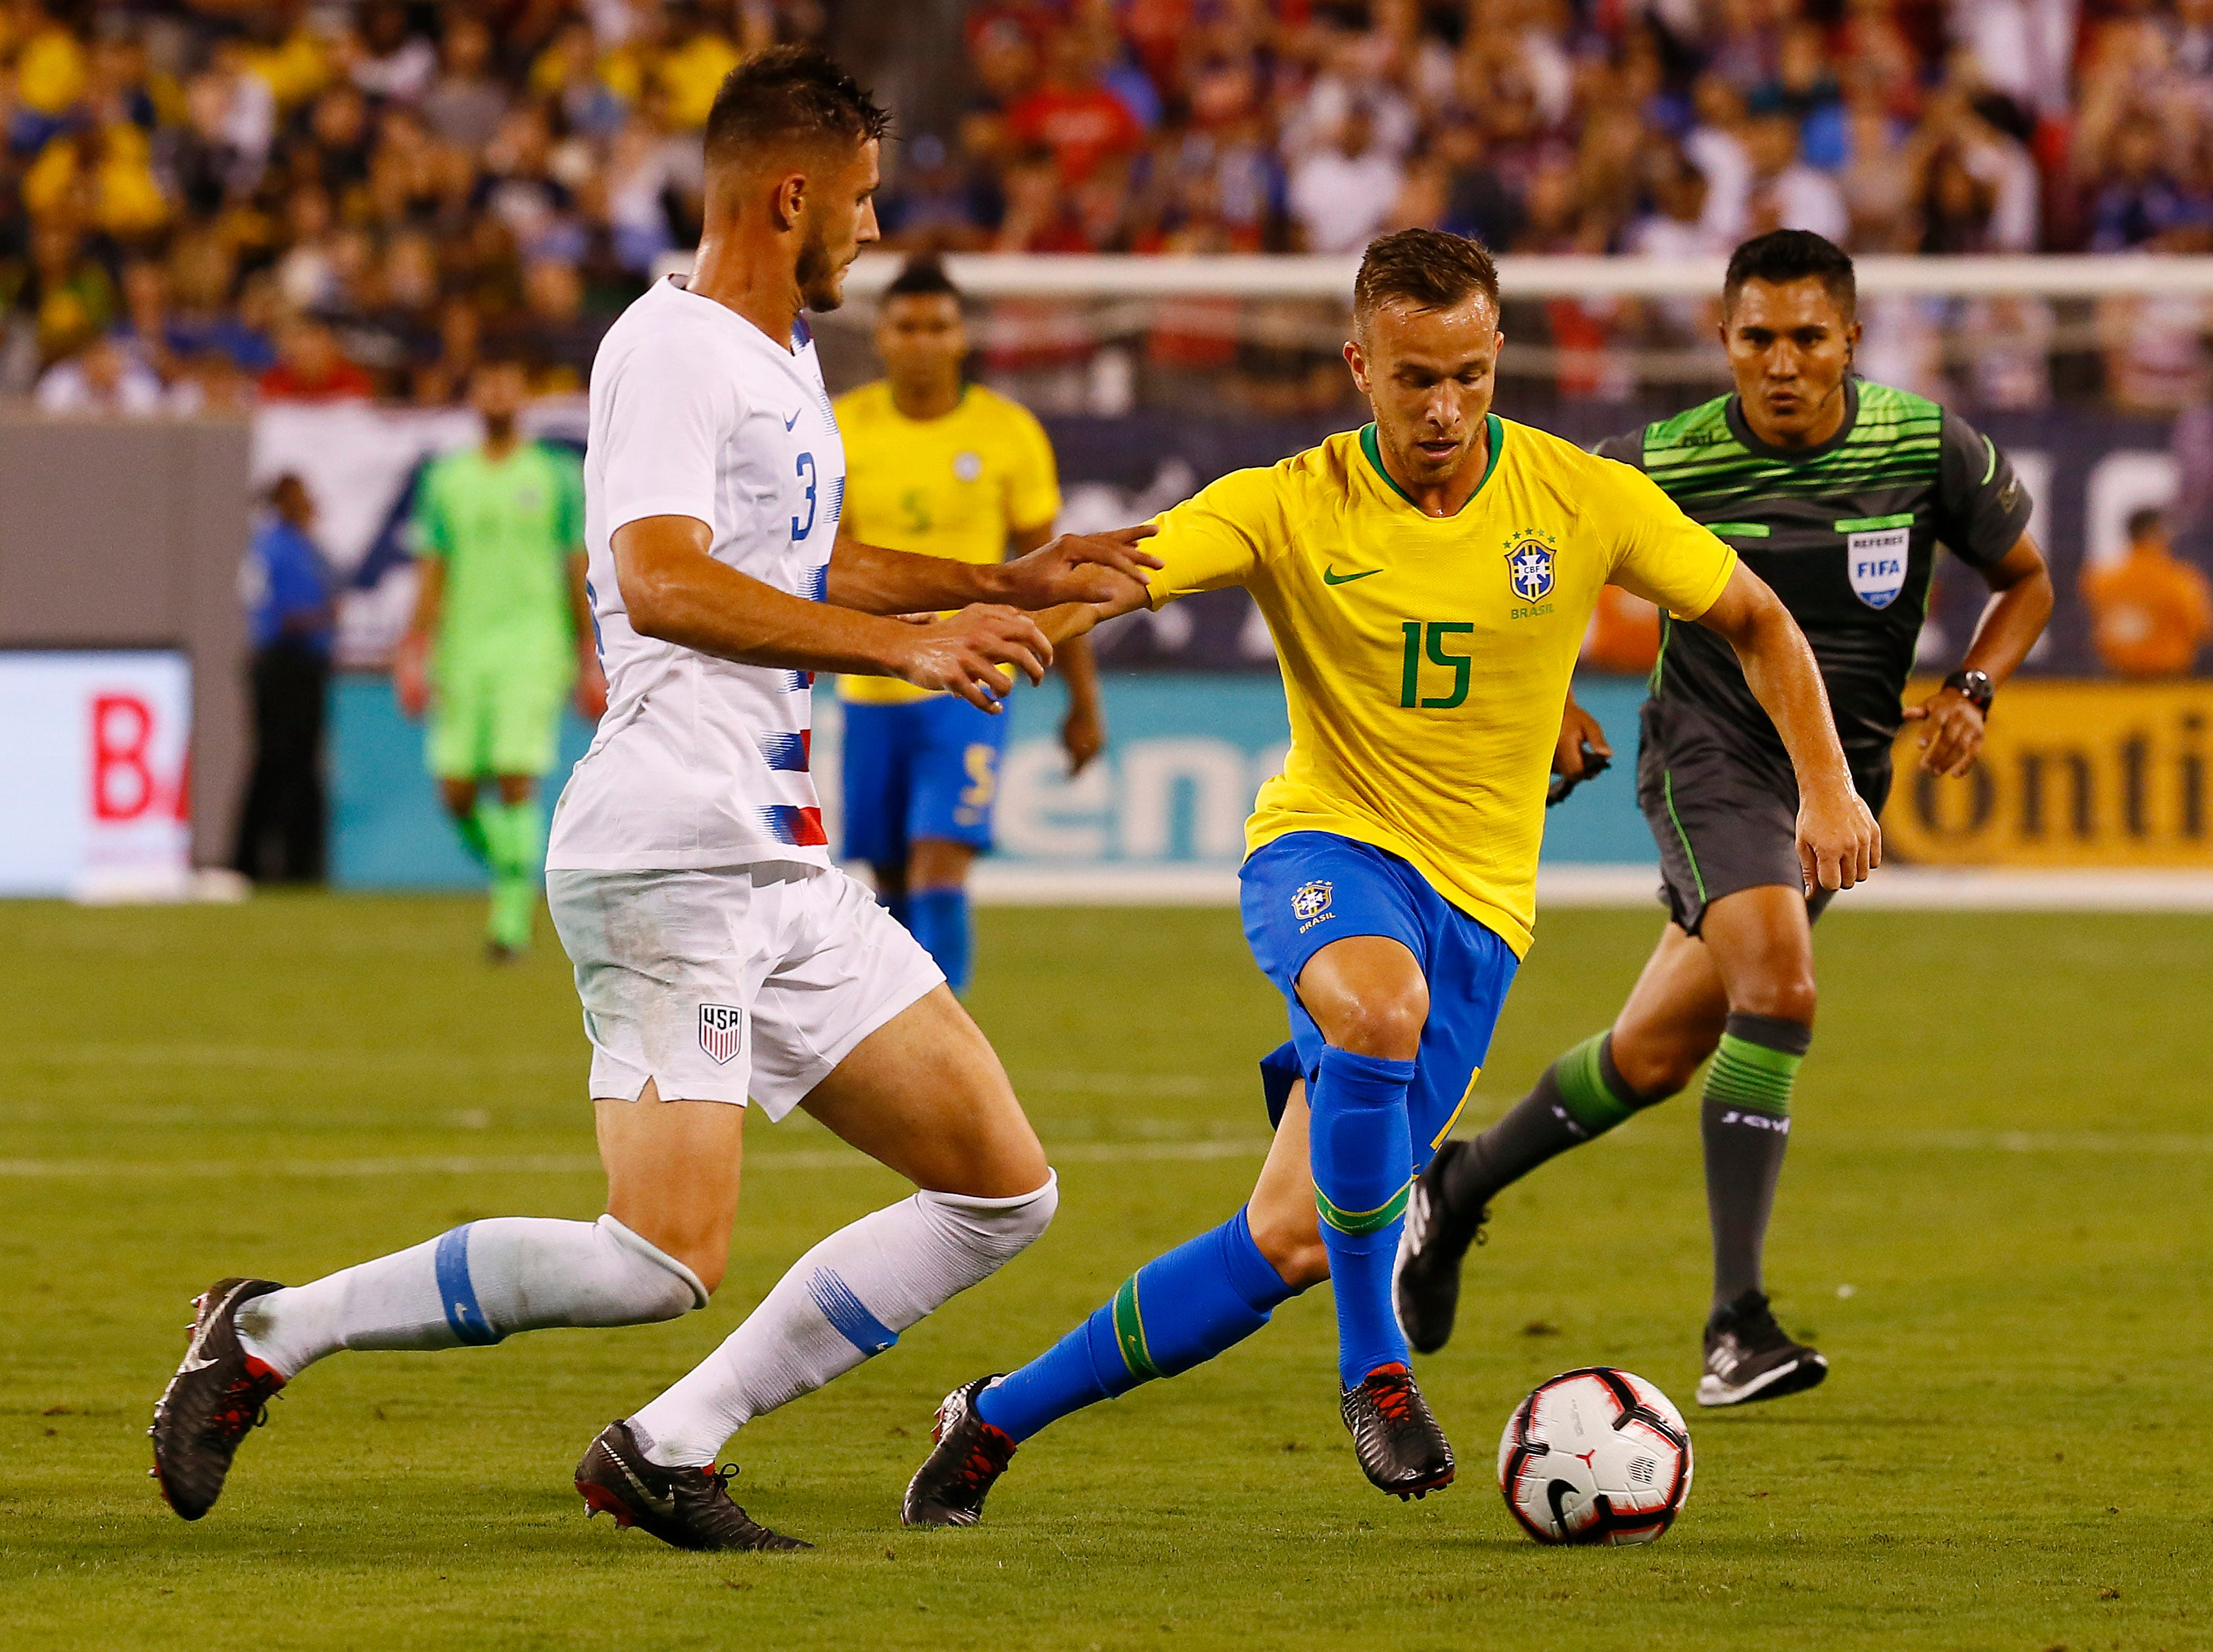 Brazil's Arthur controls the ball in front of U.S. Men's National Team's Matt Miazga during their international friendly at MetLife Stadium in East Rutherford, N.J. The US was defeated 2-0 by the five-time World Cup champions. September 7, 2018, East Rutherford, NJ